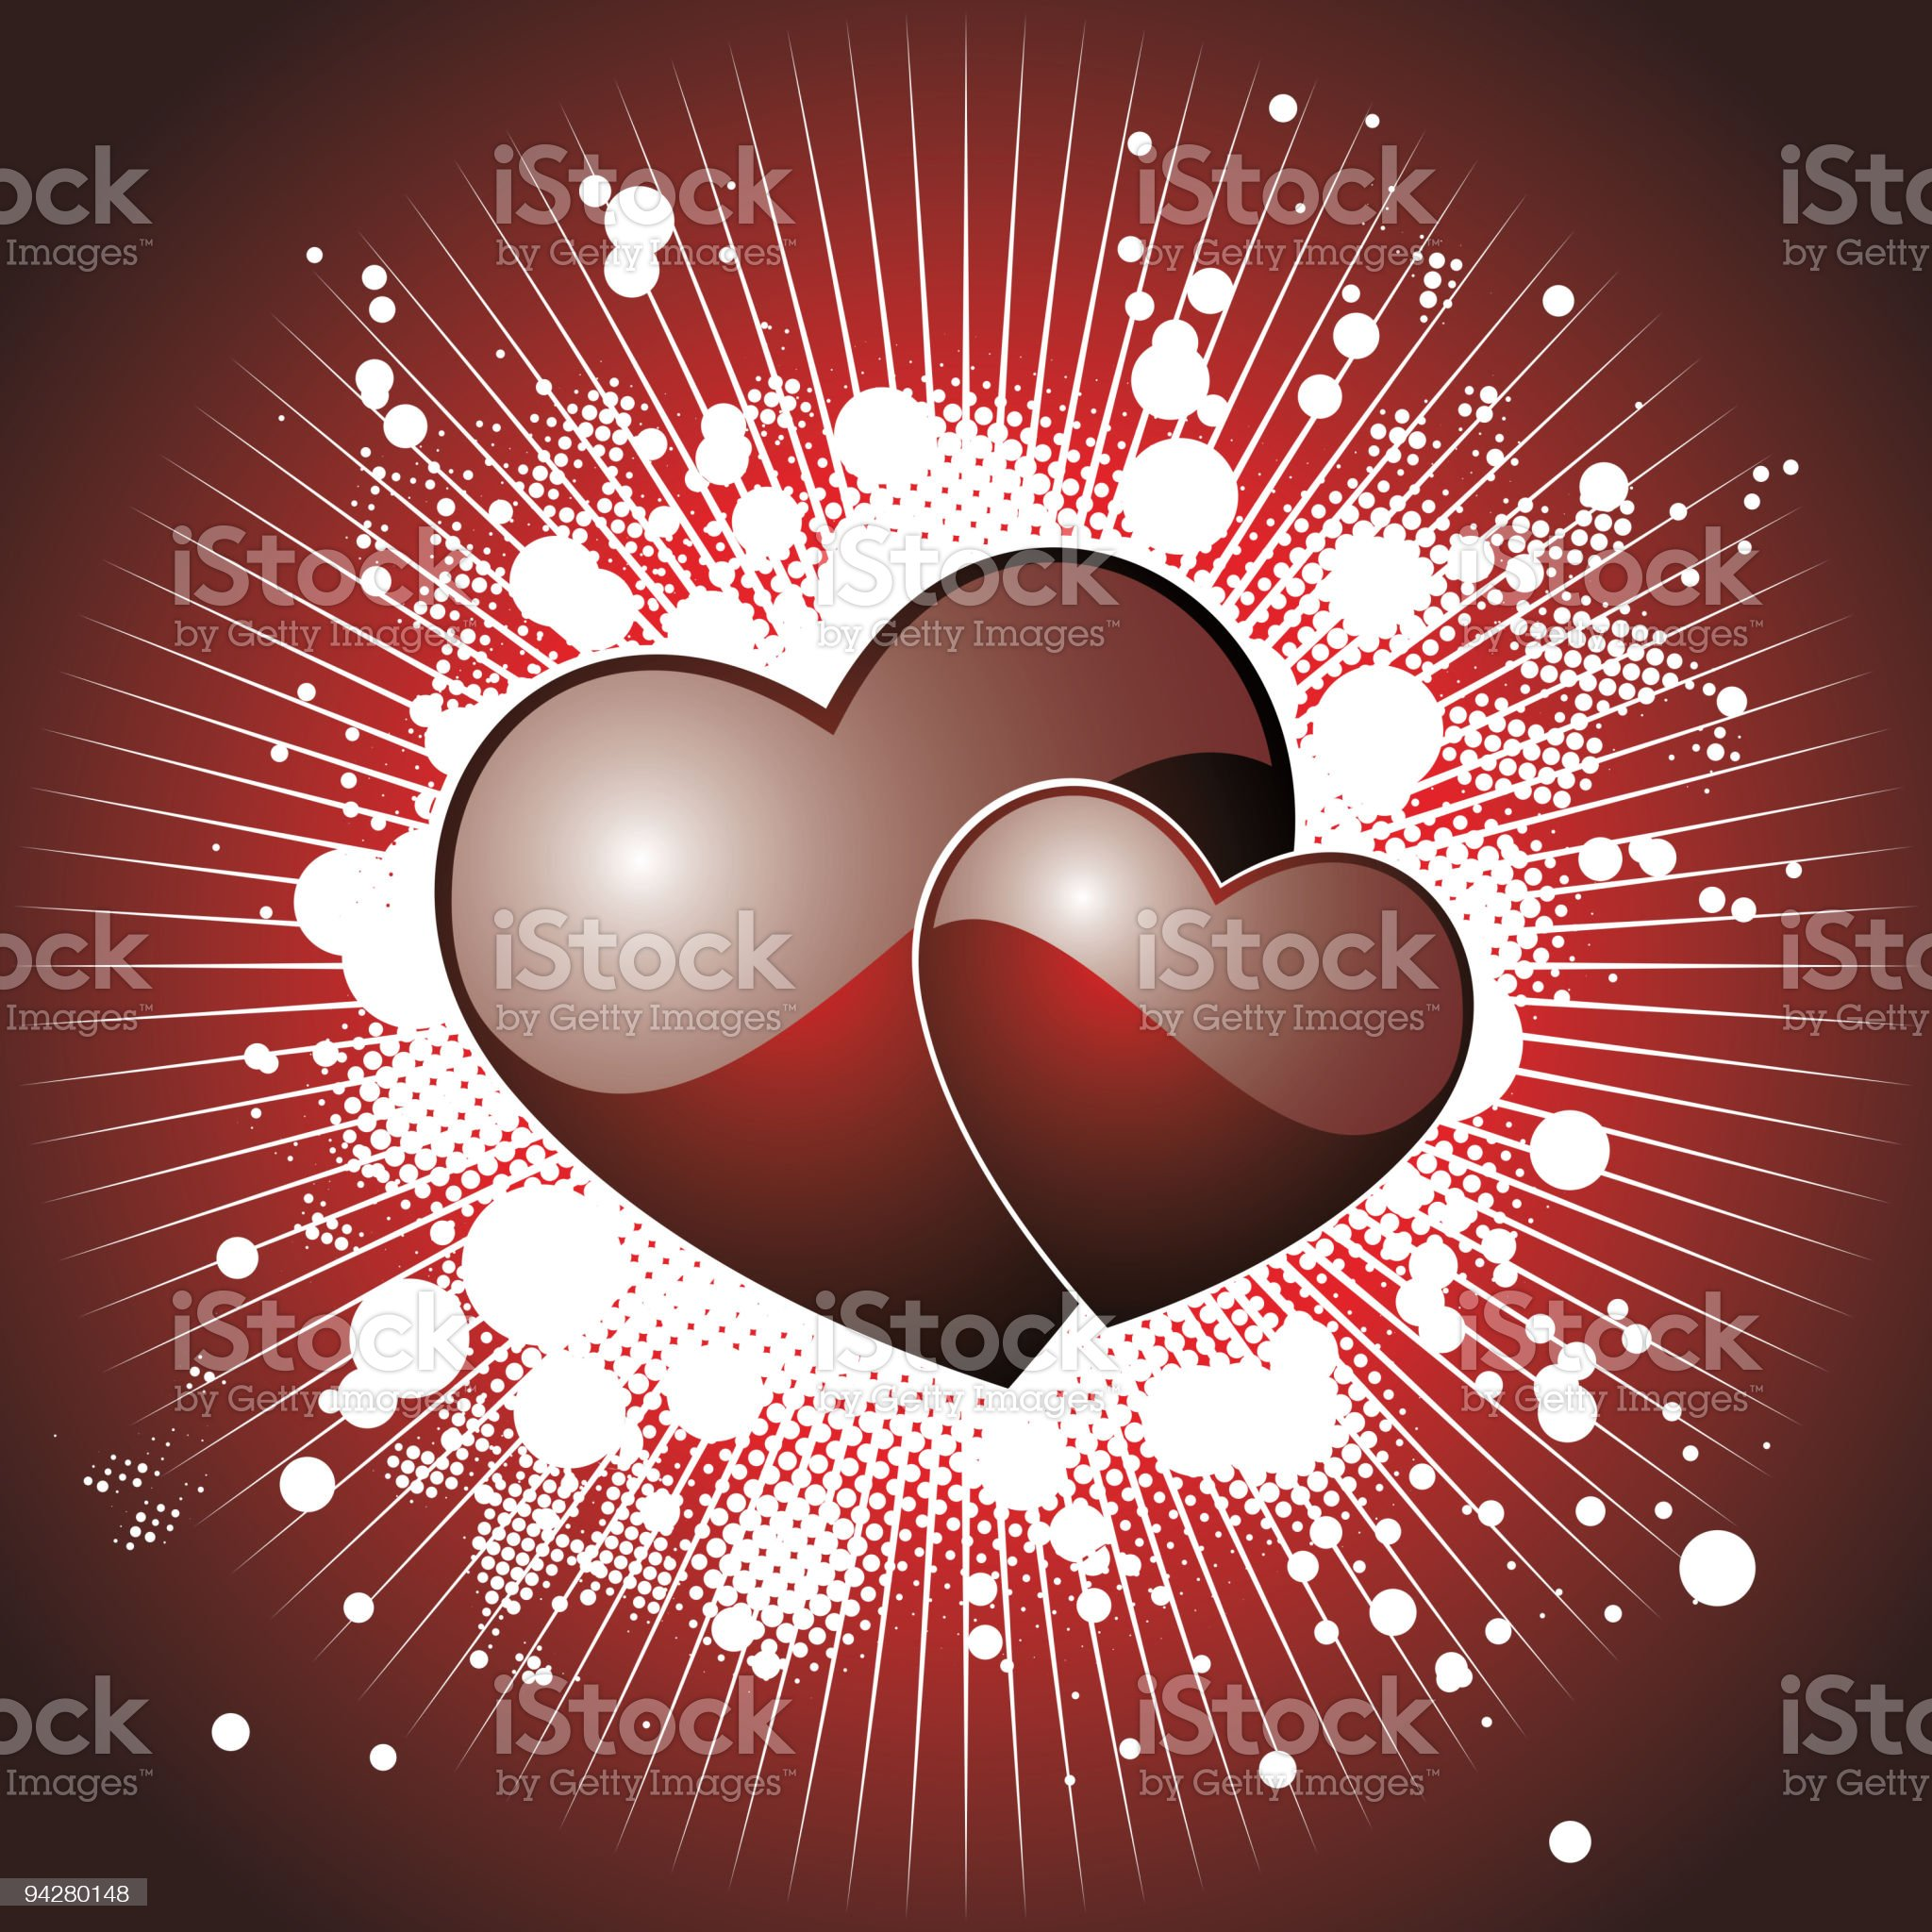 Valentine's day illustration with glossy red hearts. royalty-free stock vector art